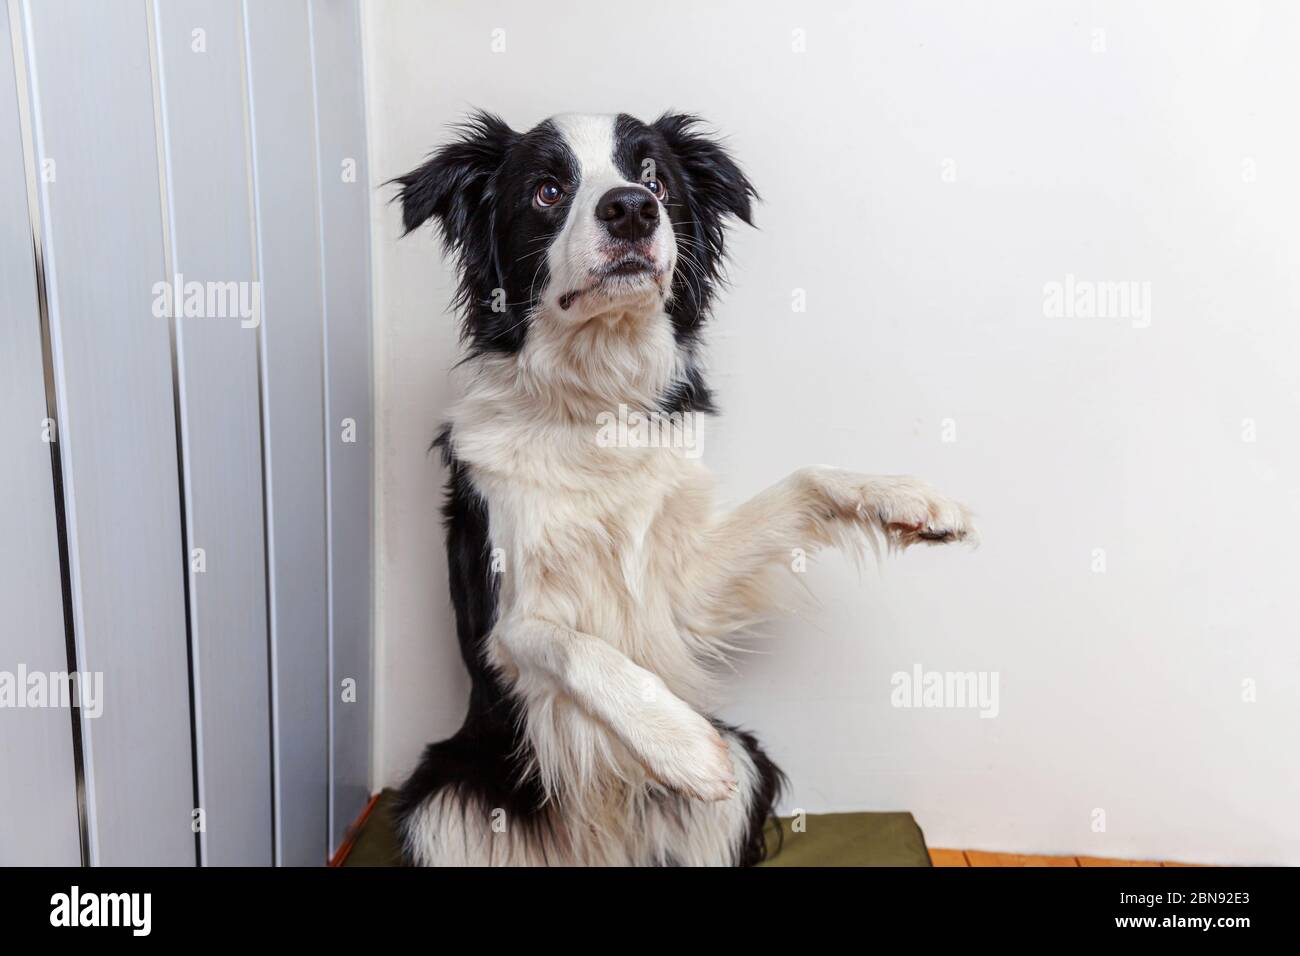 Funny Portrait Of Cute Smiling Puppy Dog Border Collie Indoor New Lovely Member Of Family Little Dog At Home Gazing And Waiting For Reward Funny Pets Animals Life Concept Stock Photo